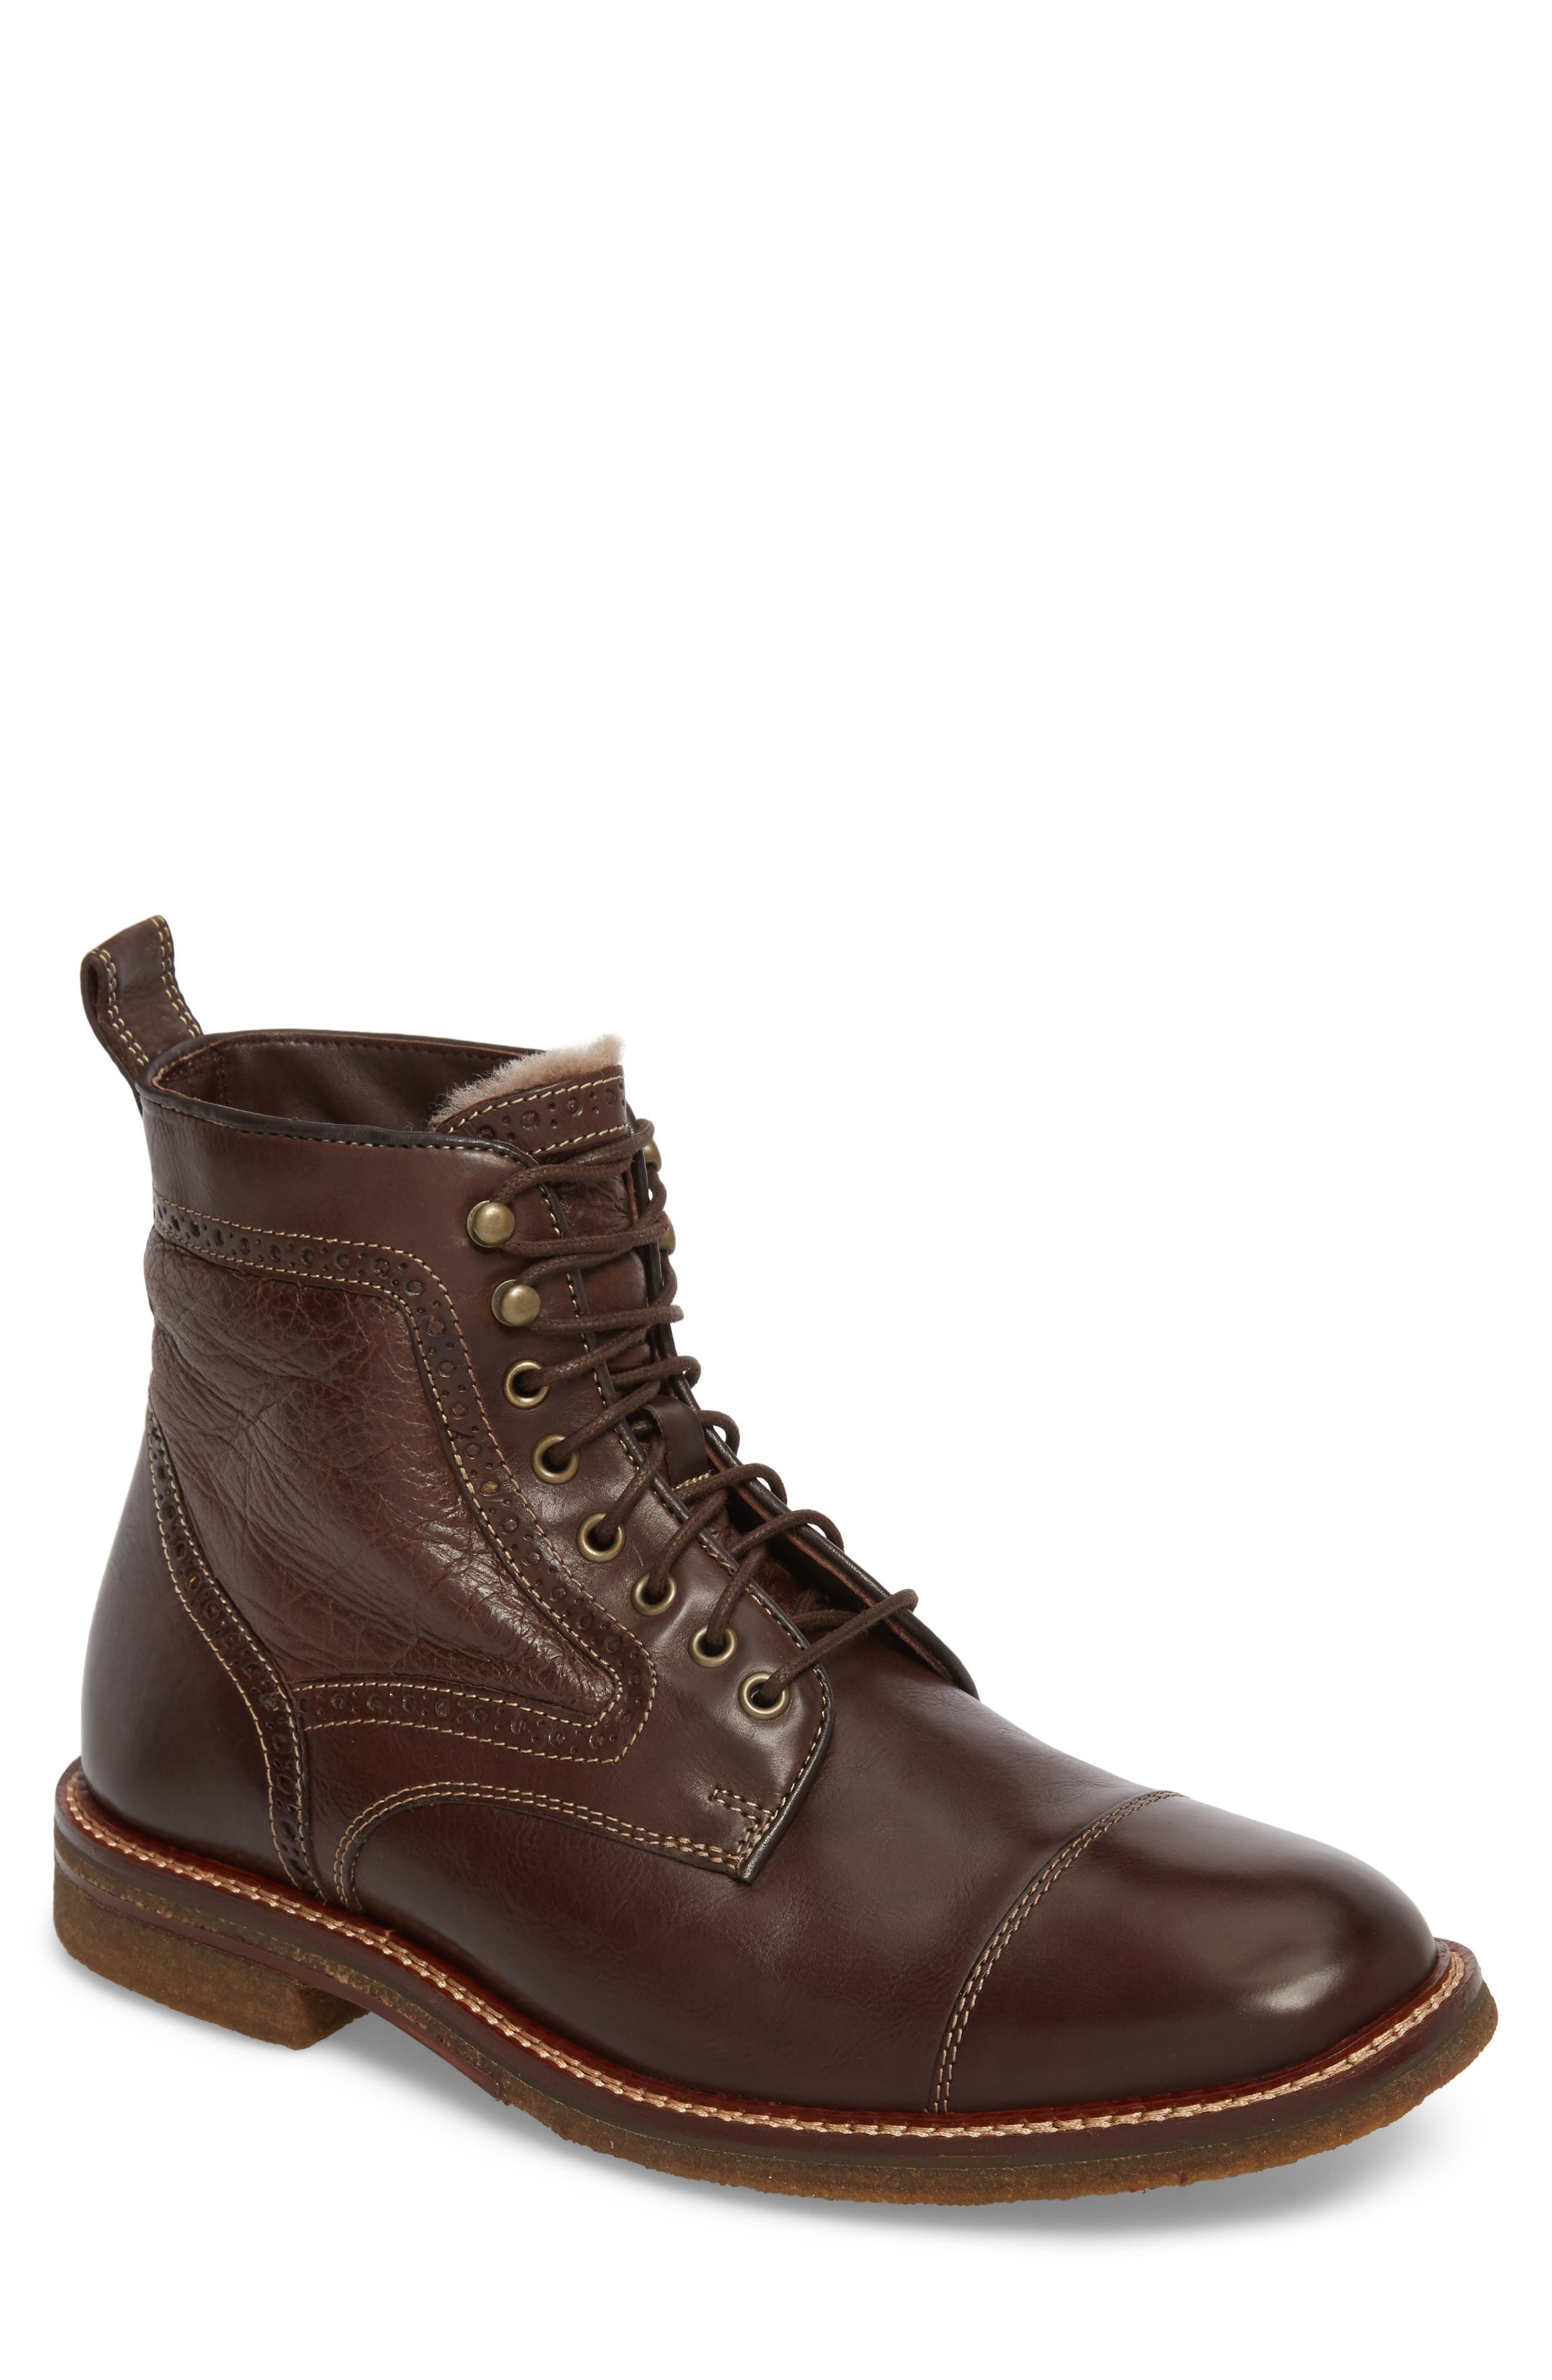 Forrester Genuine Shearling Lined Cap Toe Boot,                             Main thumbnail 1, color,